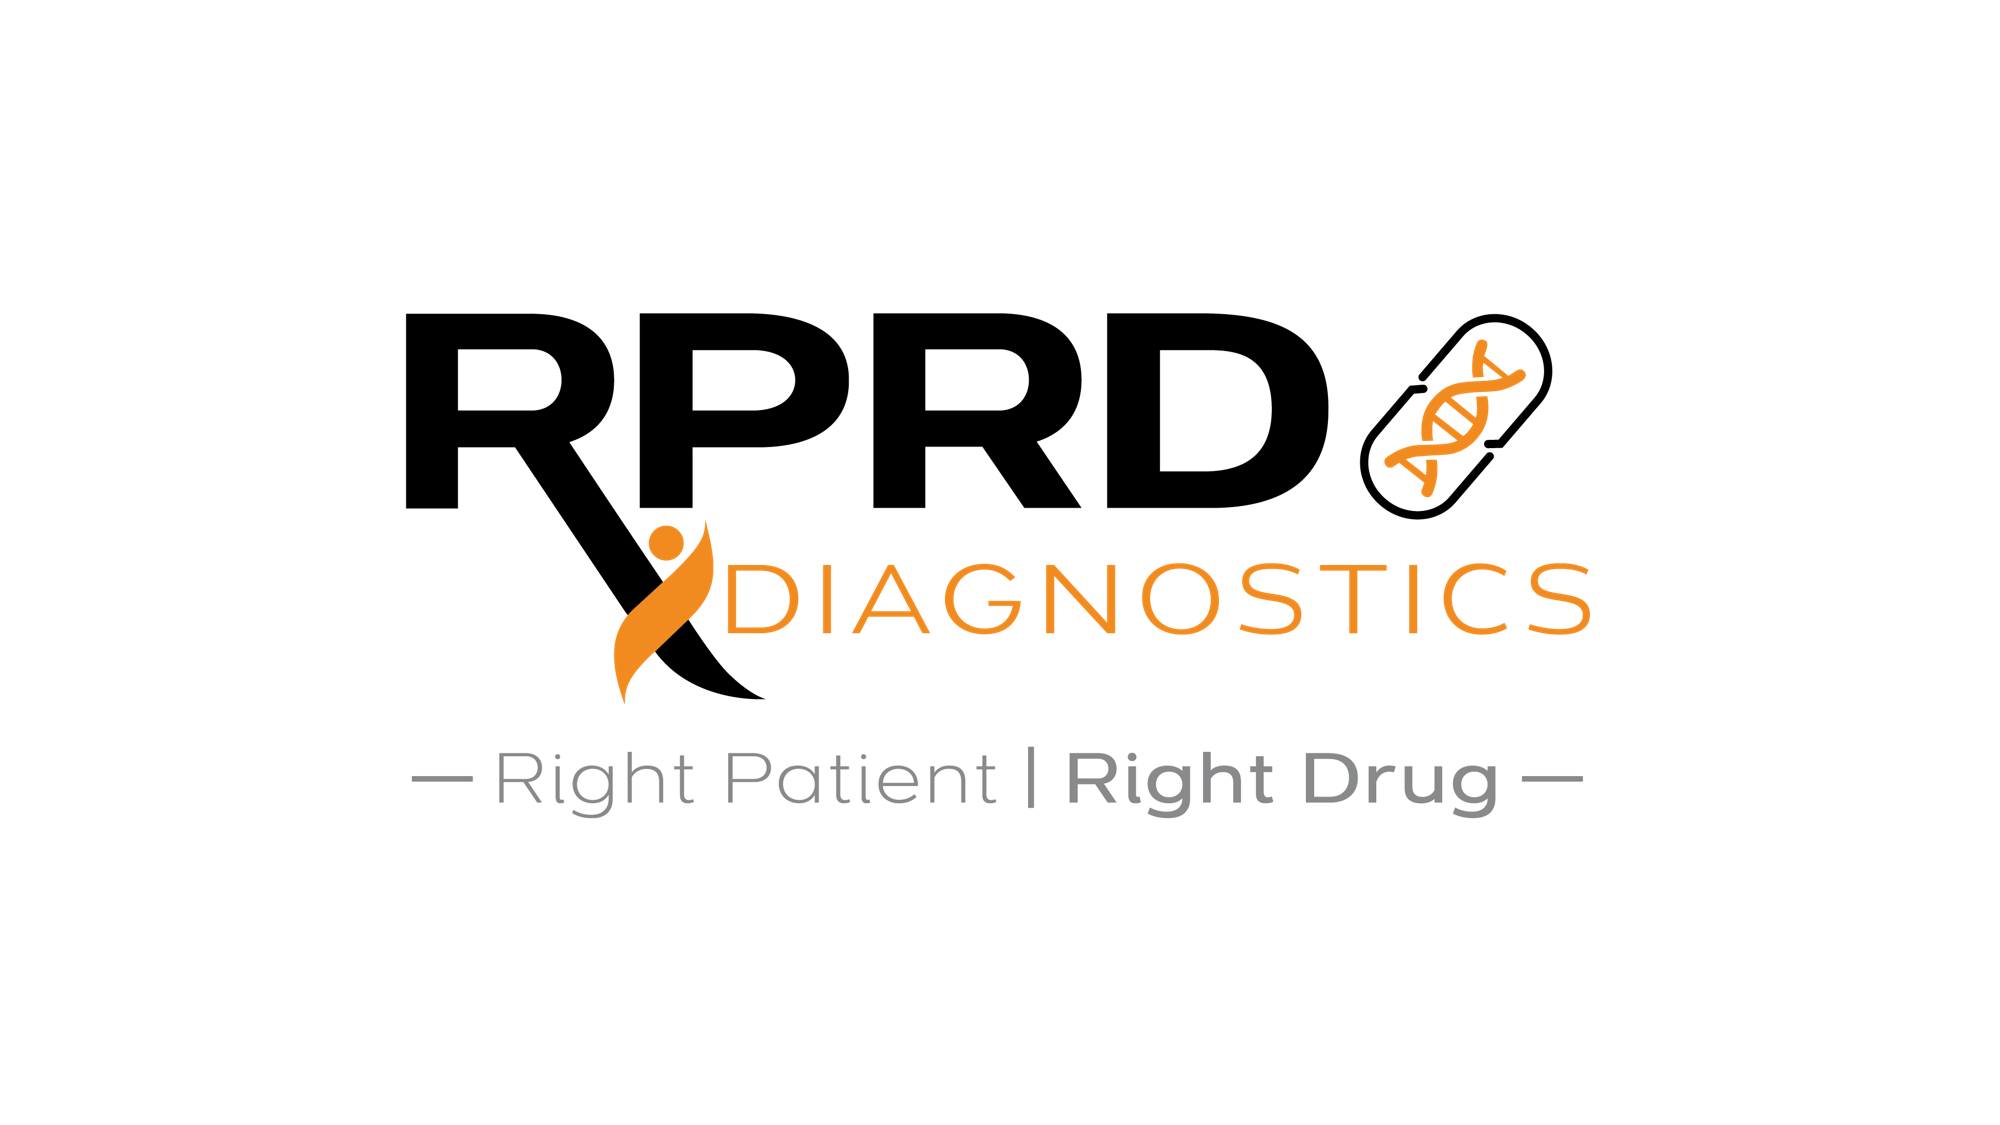 - RPRD Diagnostics is a precision medicine company focused on comprehensive and specialty pharmacogenomics, with the aim to improve clinical decision support and patient outcomes. The company's founders, scientific advisors, and technical team are leaders in clinical implementation of genetic testing.